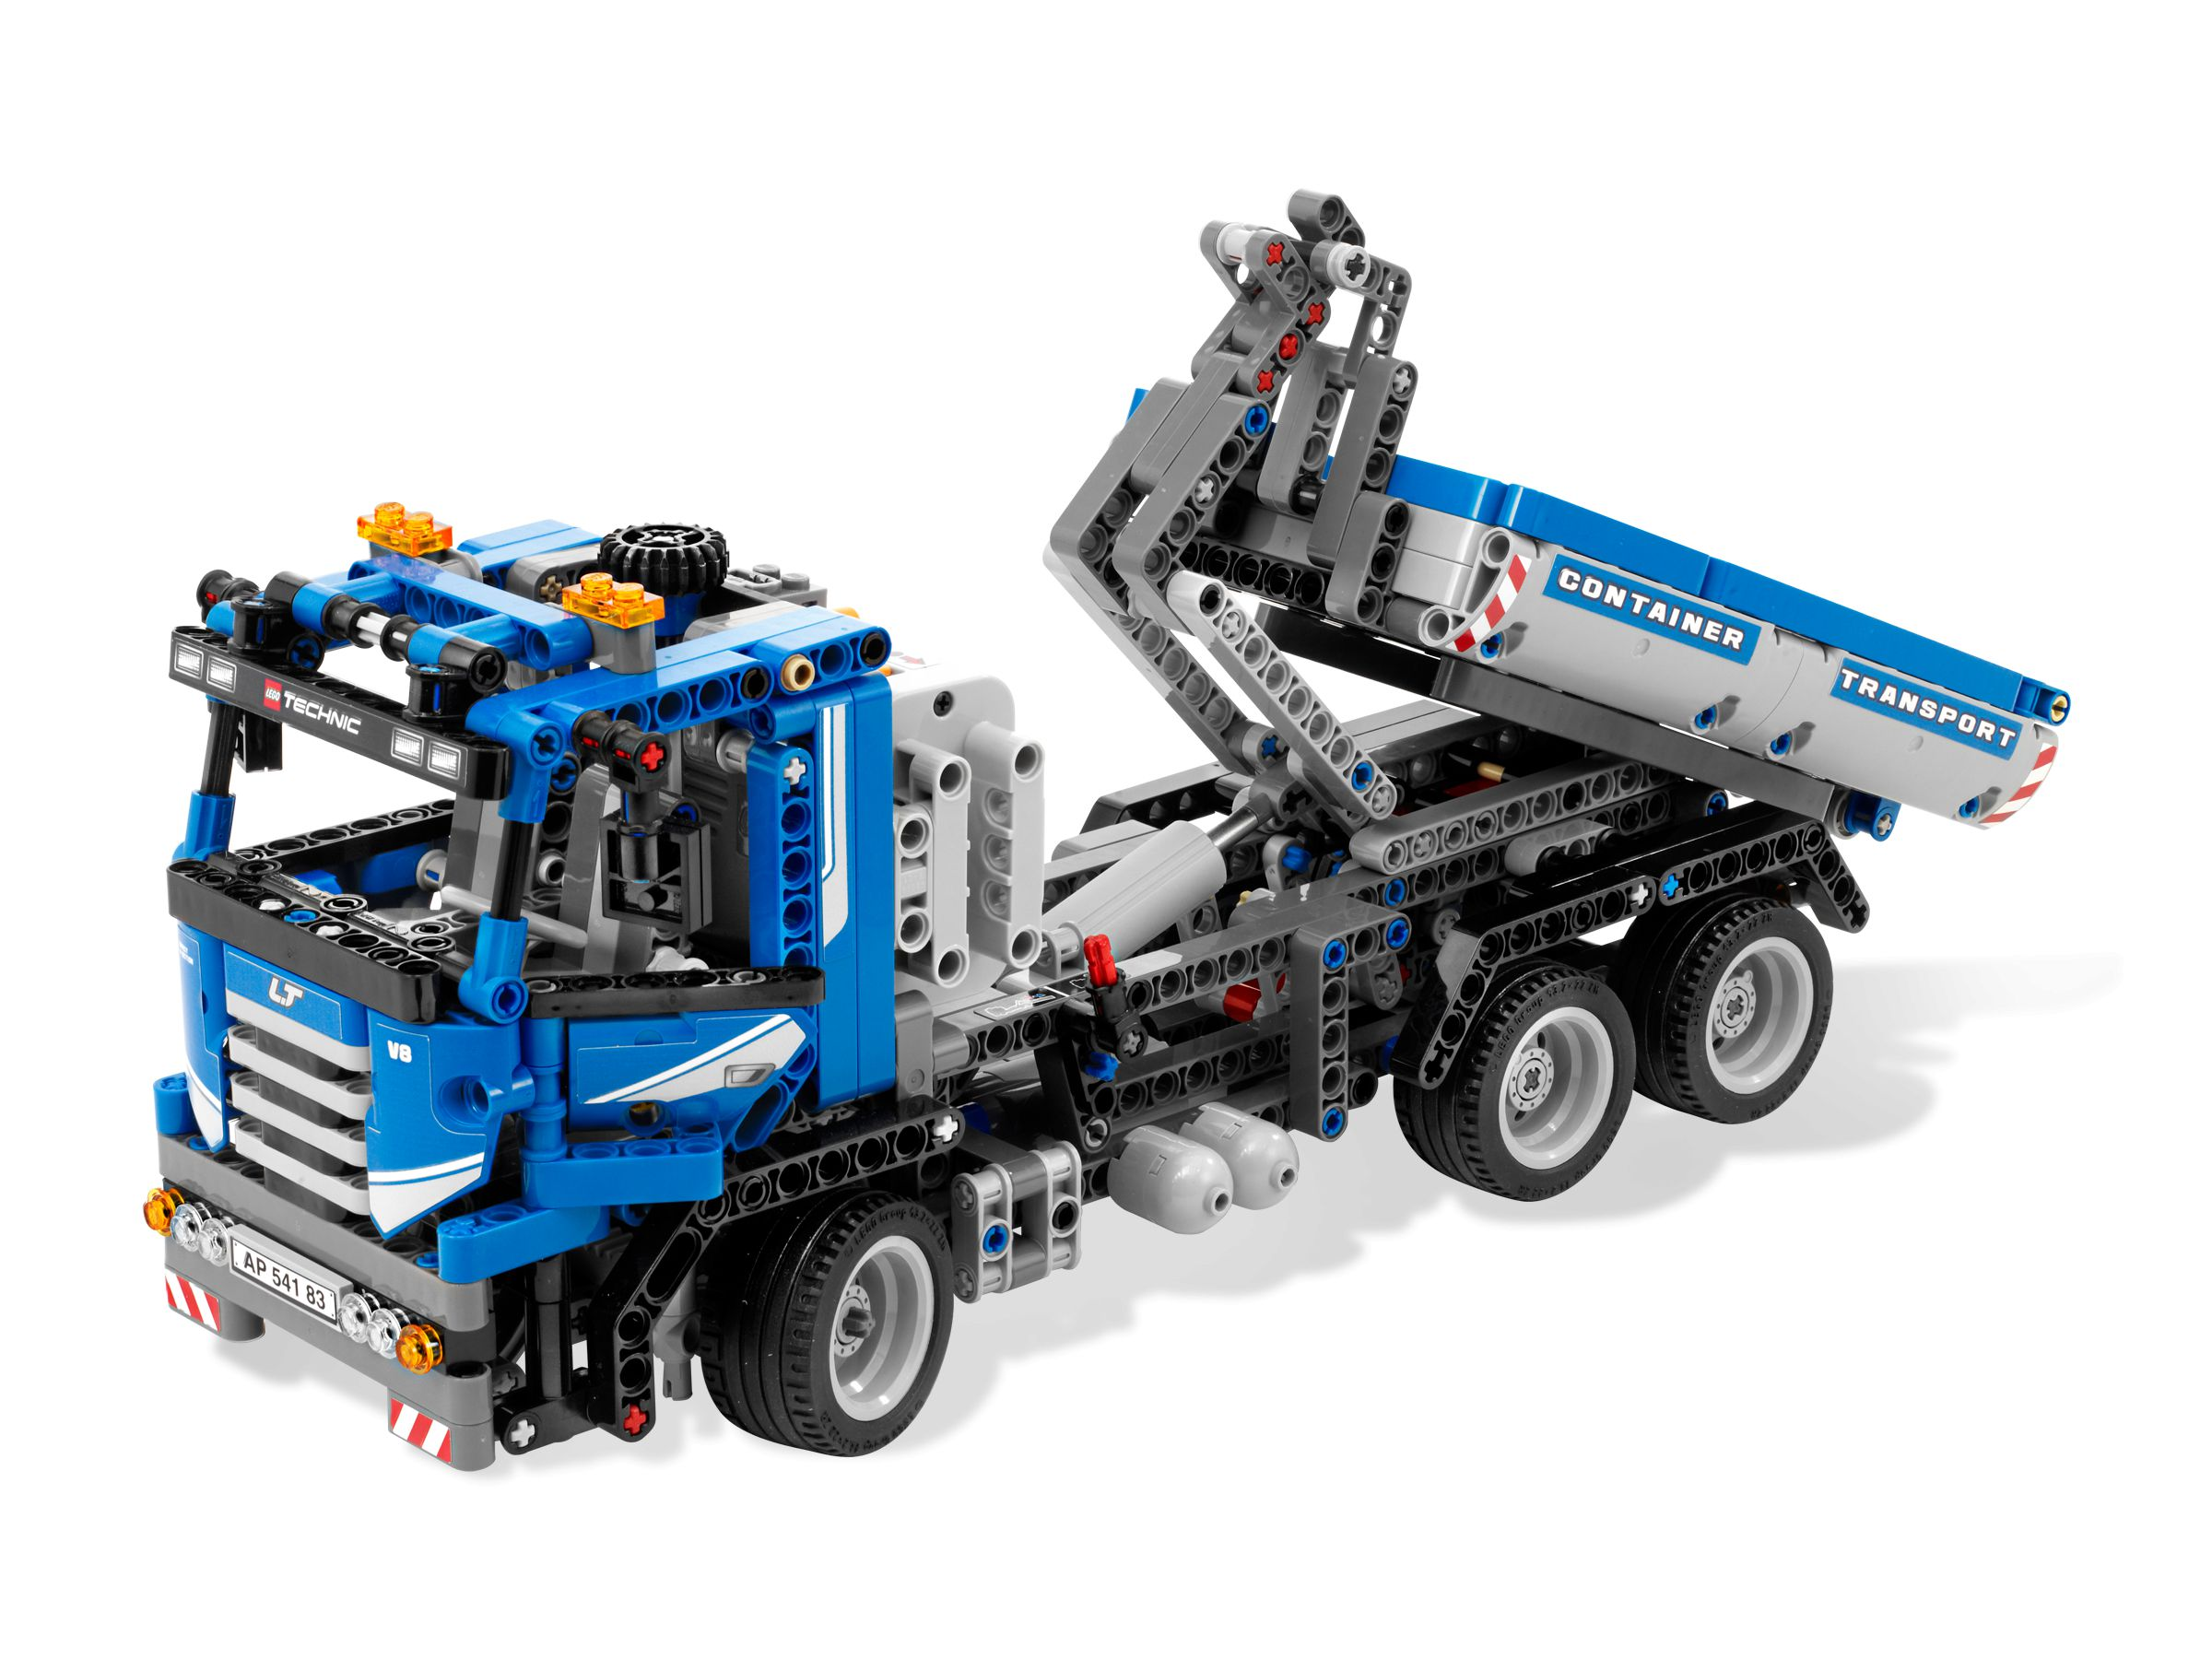 LEGO Technic 8052 Container Truck LEGO_8052.jpg